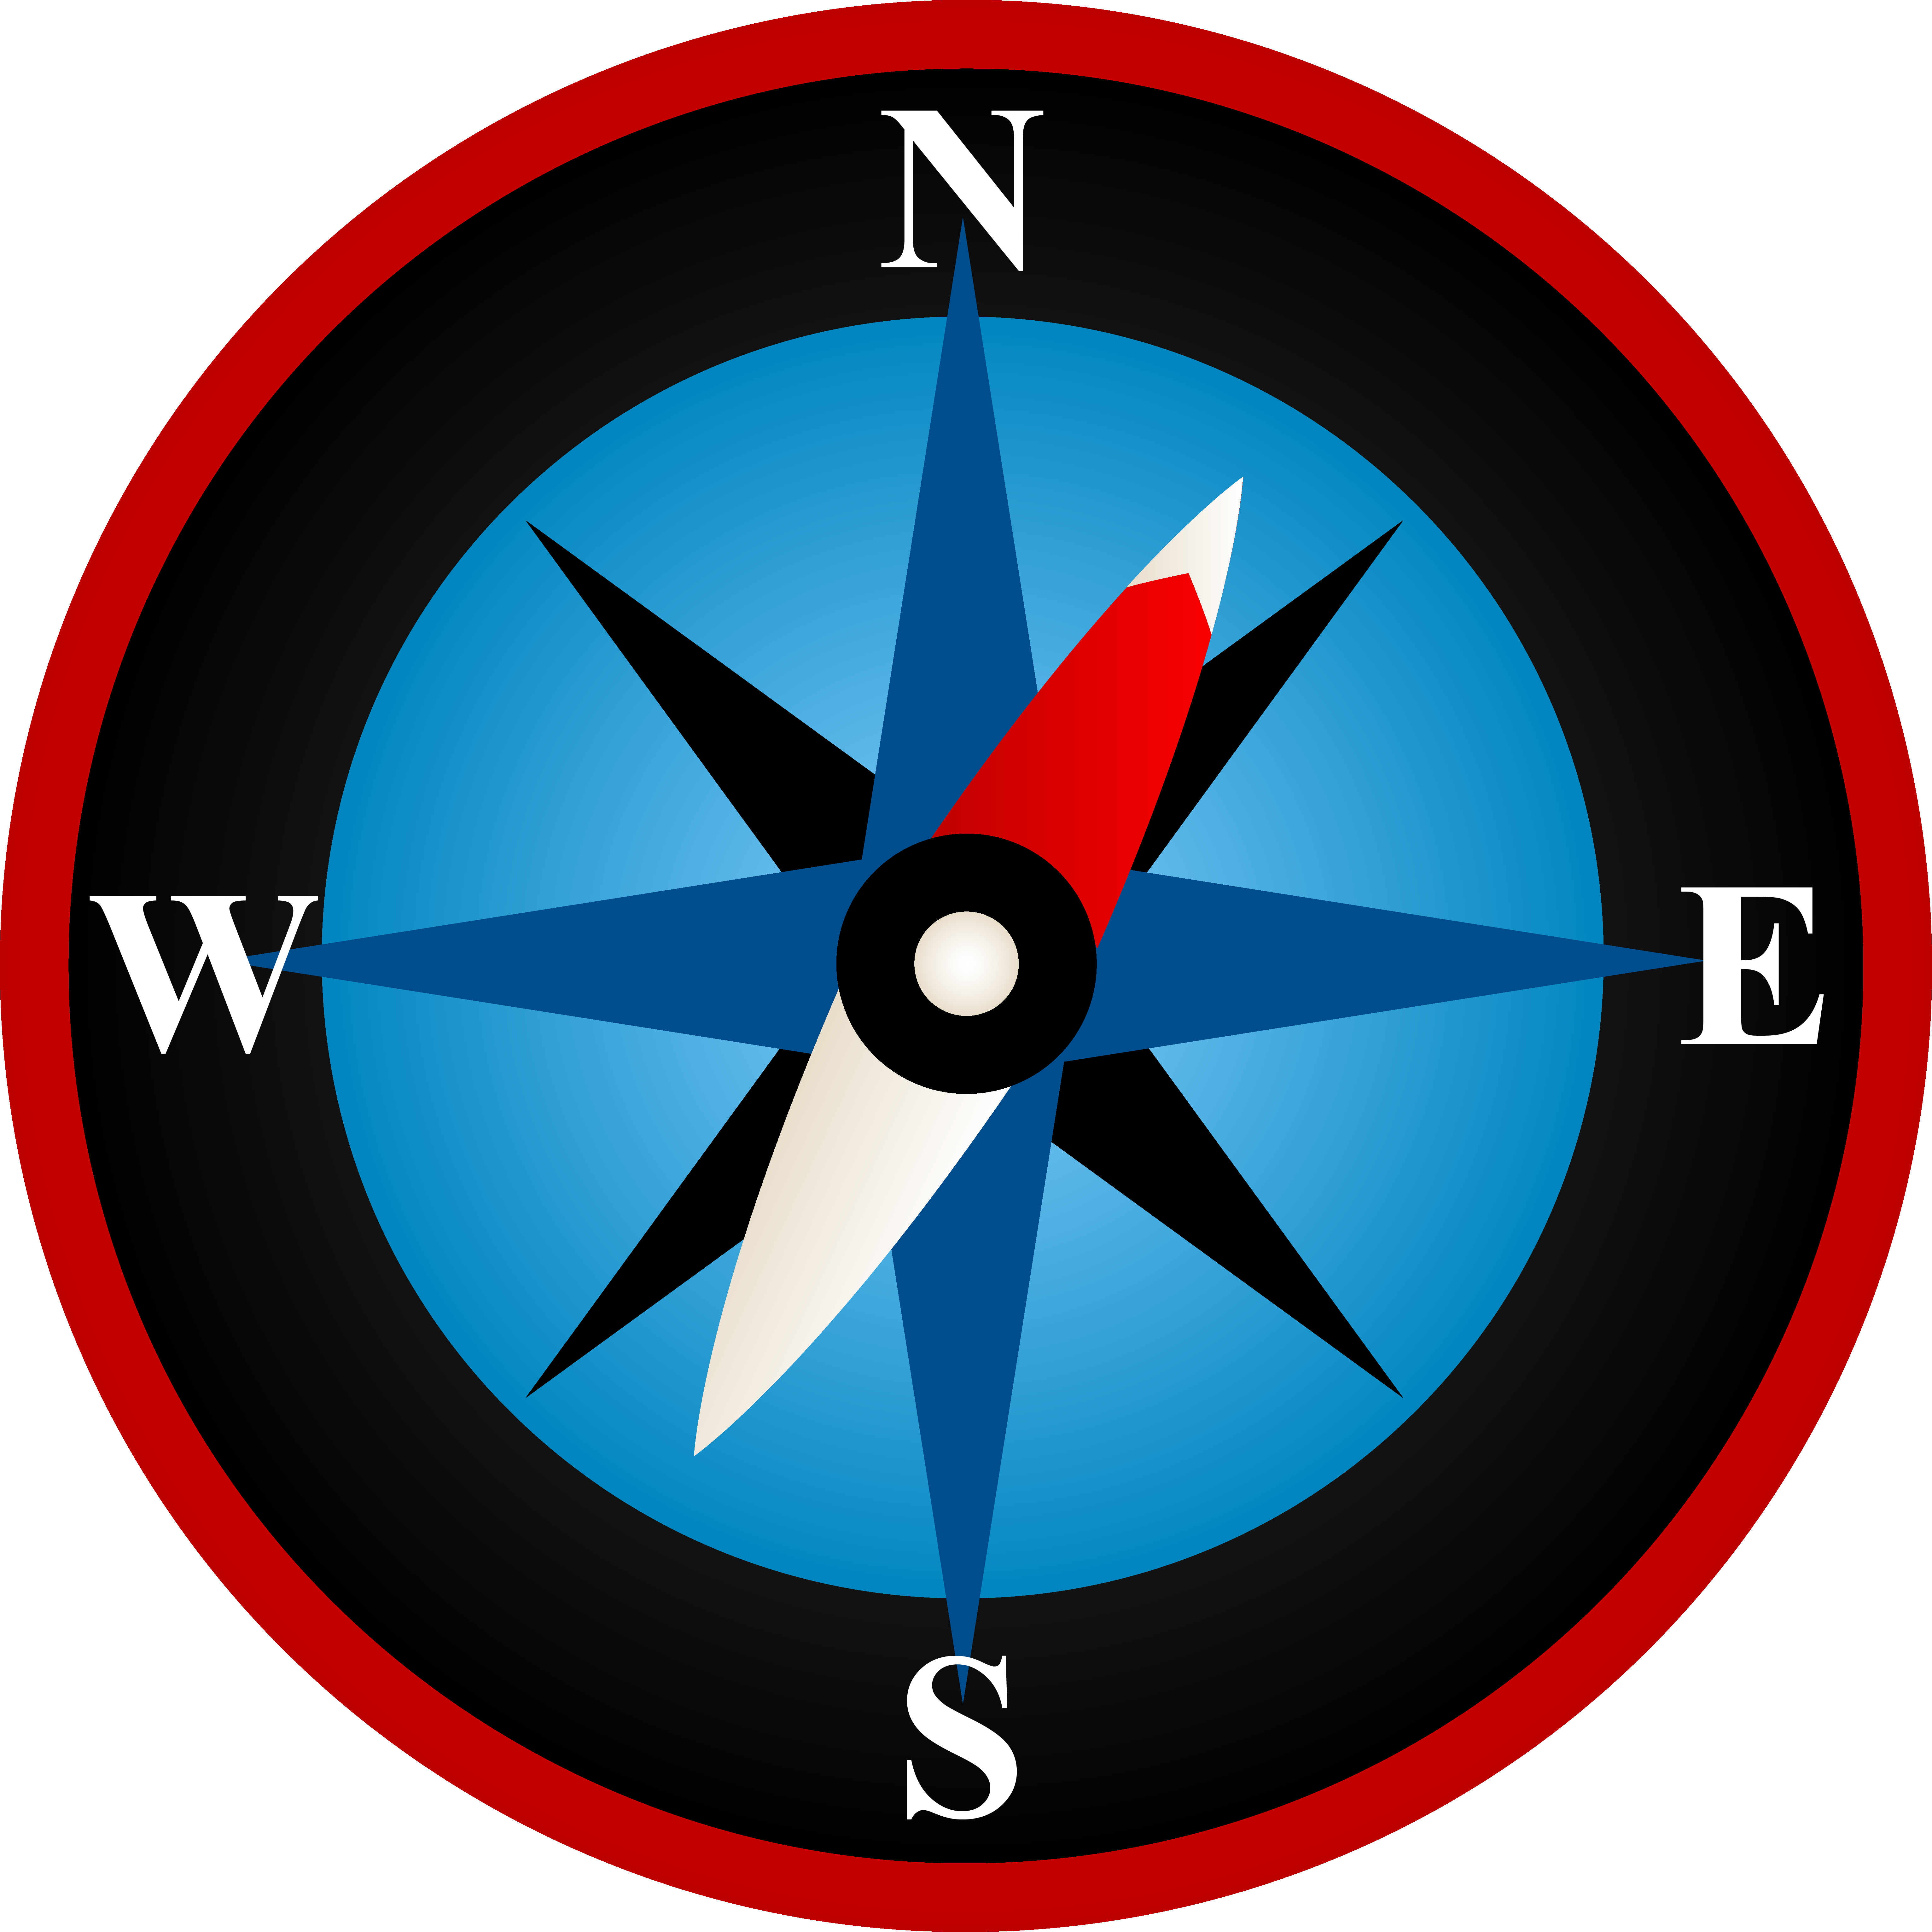 East clipart north south east west Clip Clip Compass Compass Art